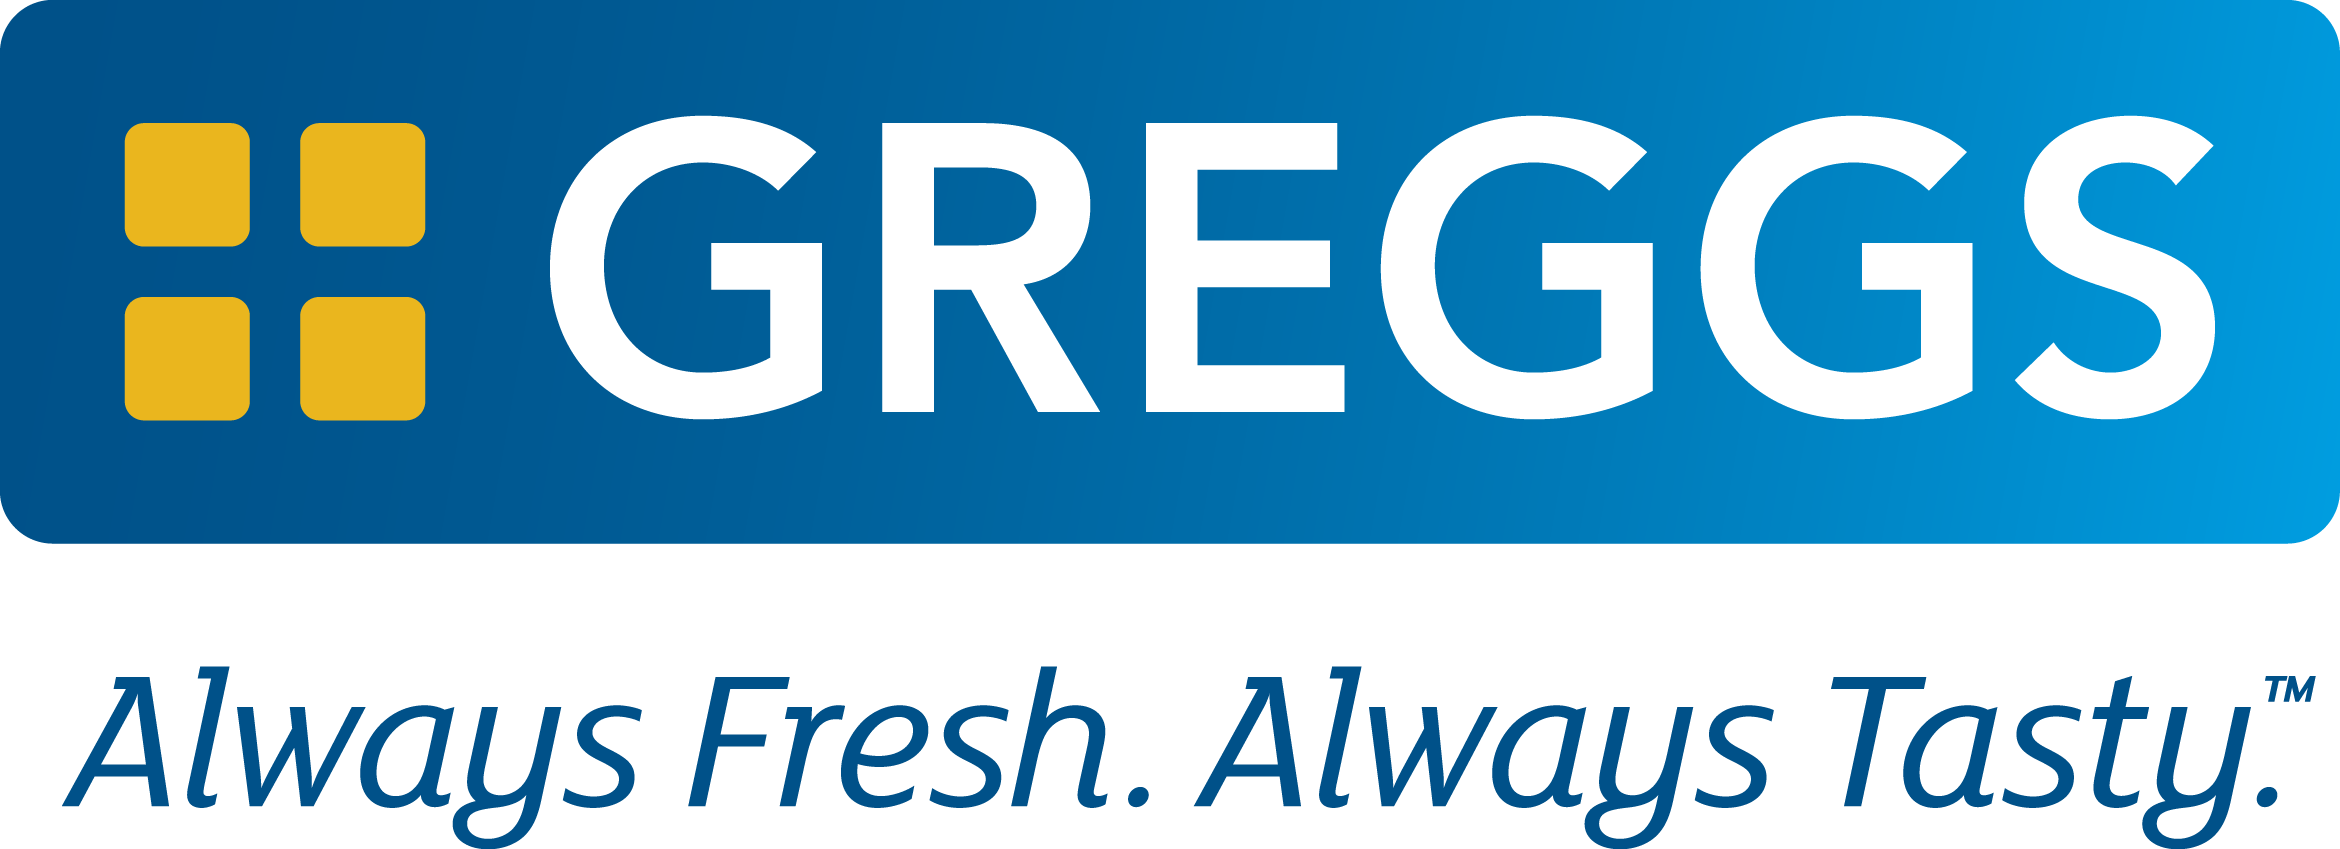 the performance of the greggs bakery chain Greggs is the leading bakery food-on-the-go retailer in the uk, with over 1,750 retail outlets throughout the country a strong performance and further strategic progress.